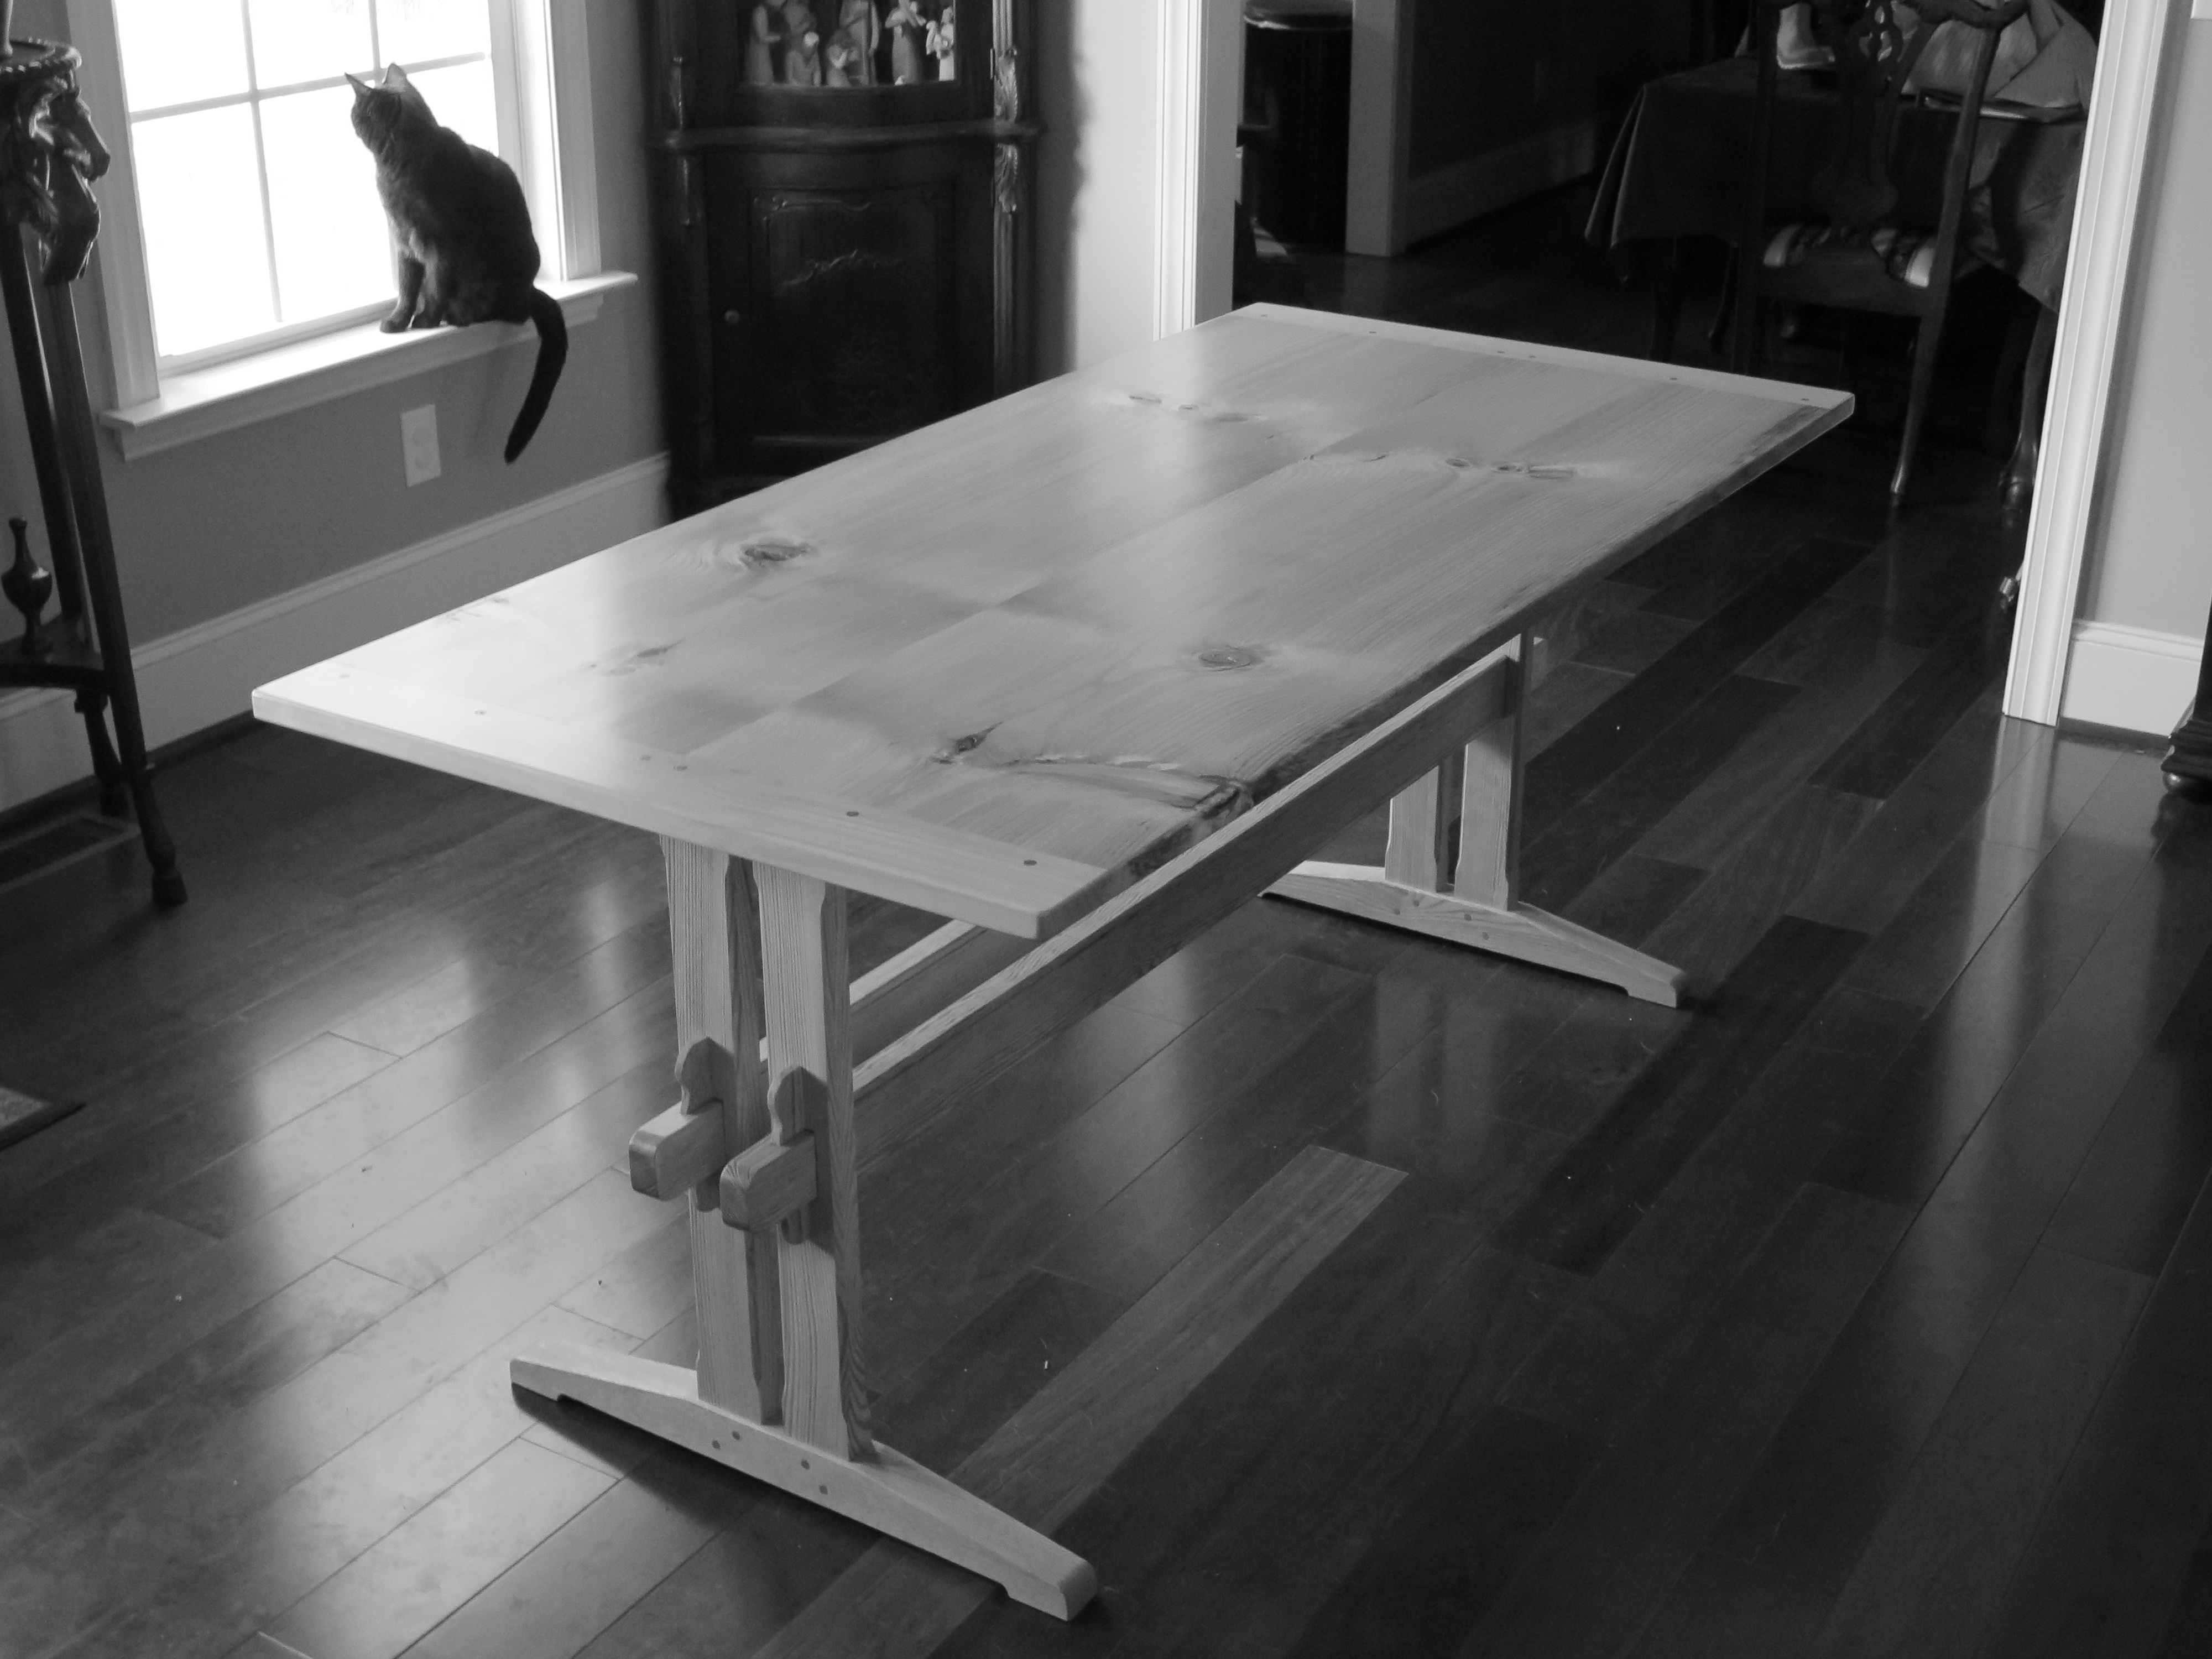 Lovely Used Trestle Tables #27 - After After Some Thought, I Came Up With A Trestle Table That Is Assembled  With Wedges. The Base Is Held Together With Four Wedged Tusk Tenons And The  Top ...